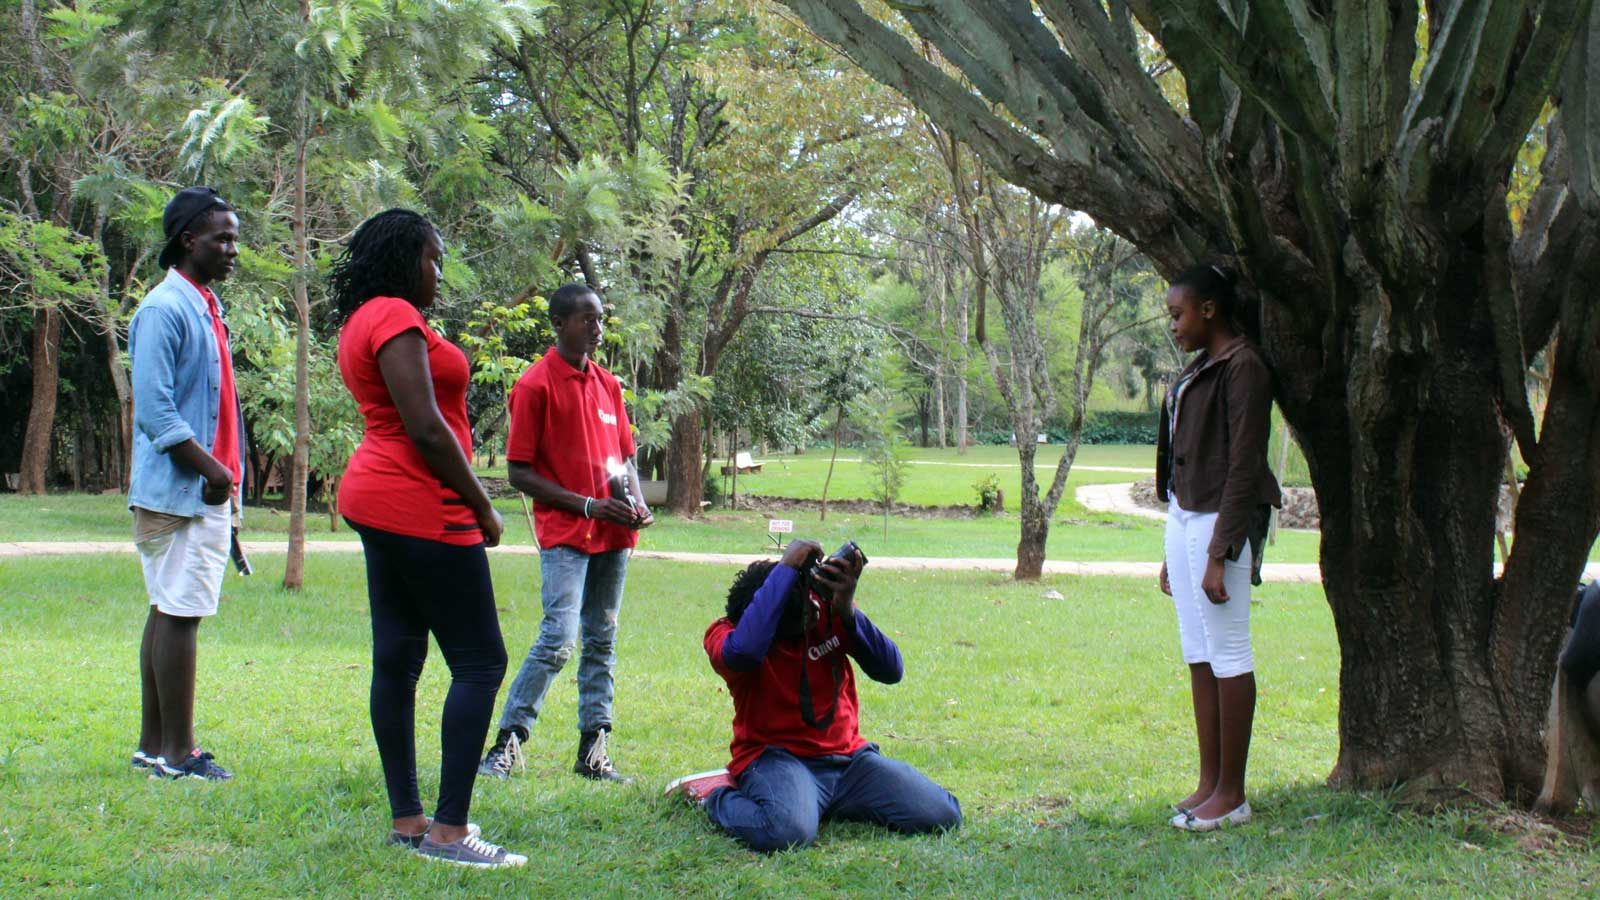 Canon utilise our technology to establish careers in Africa